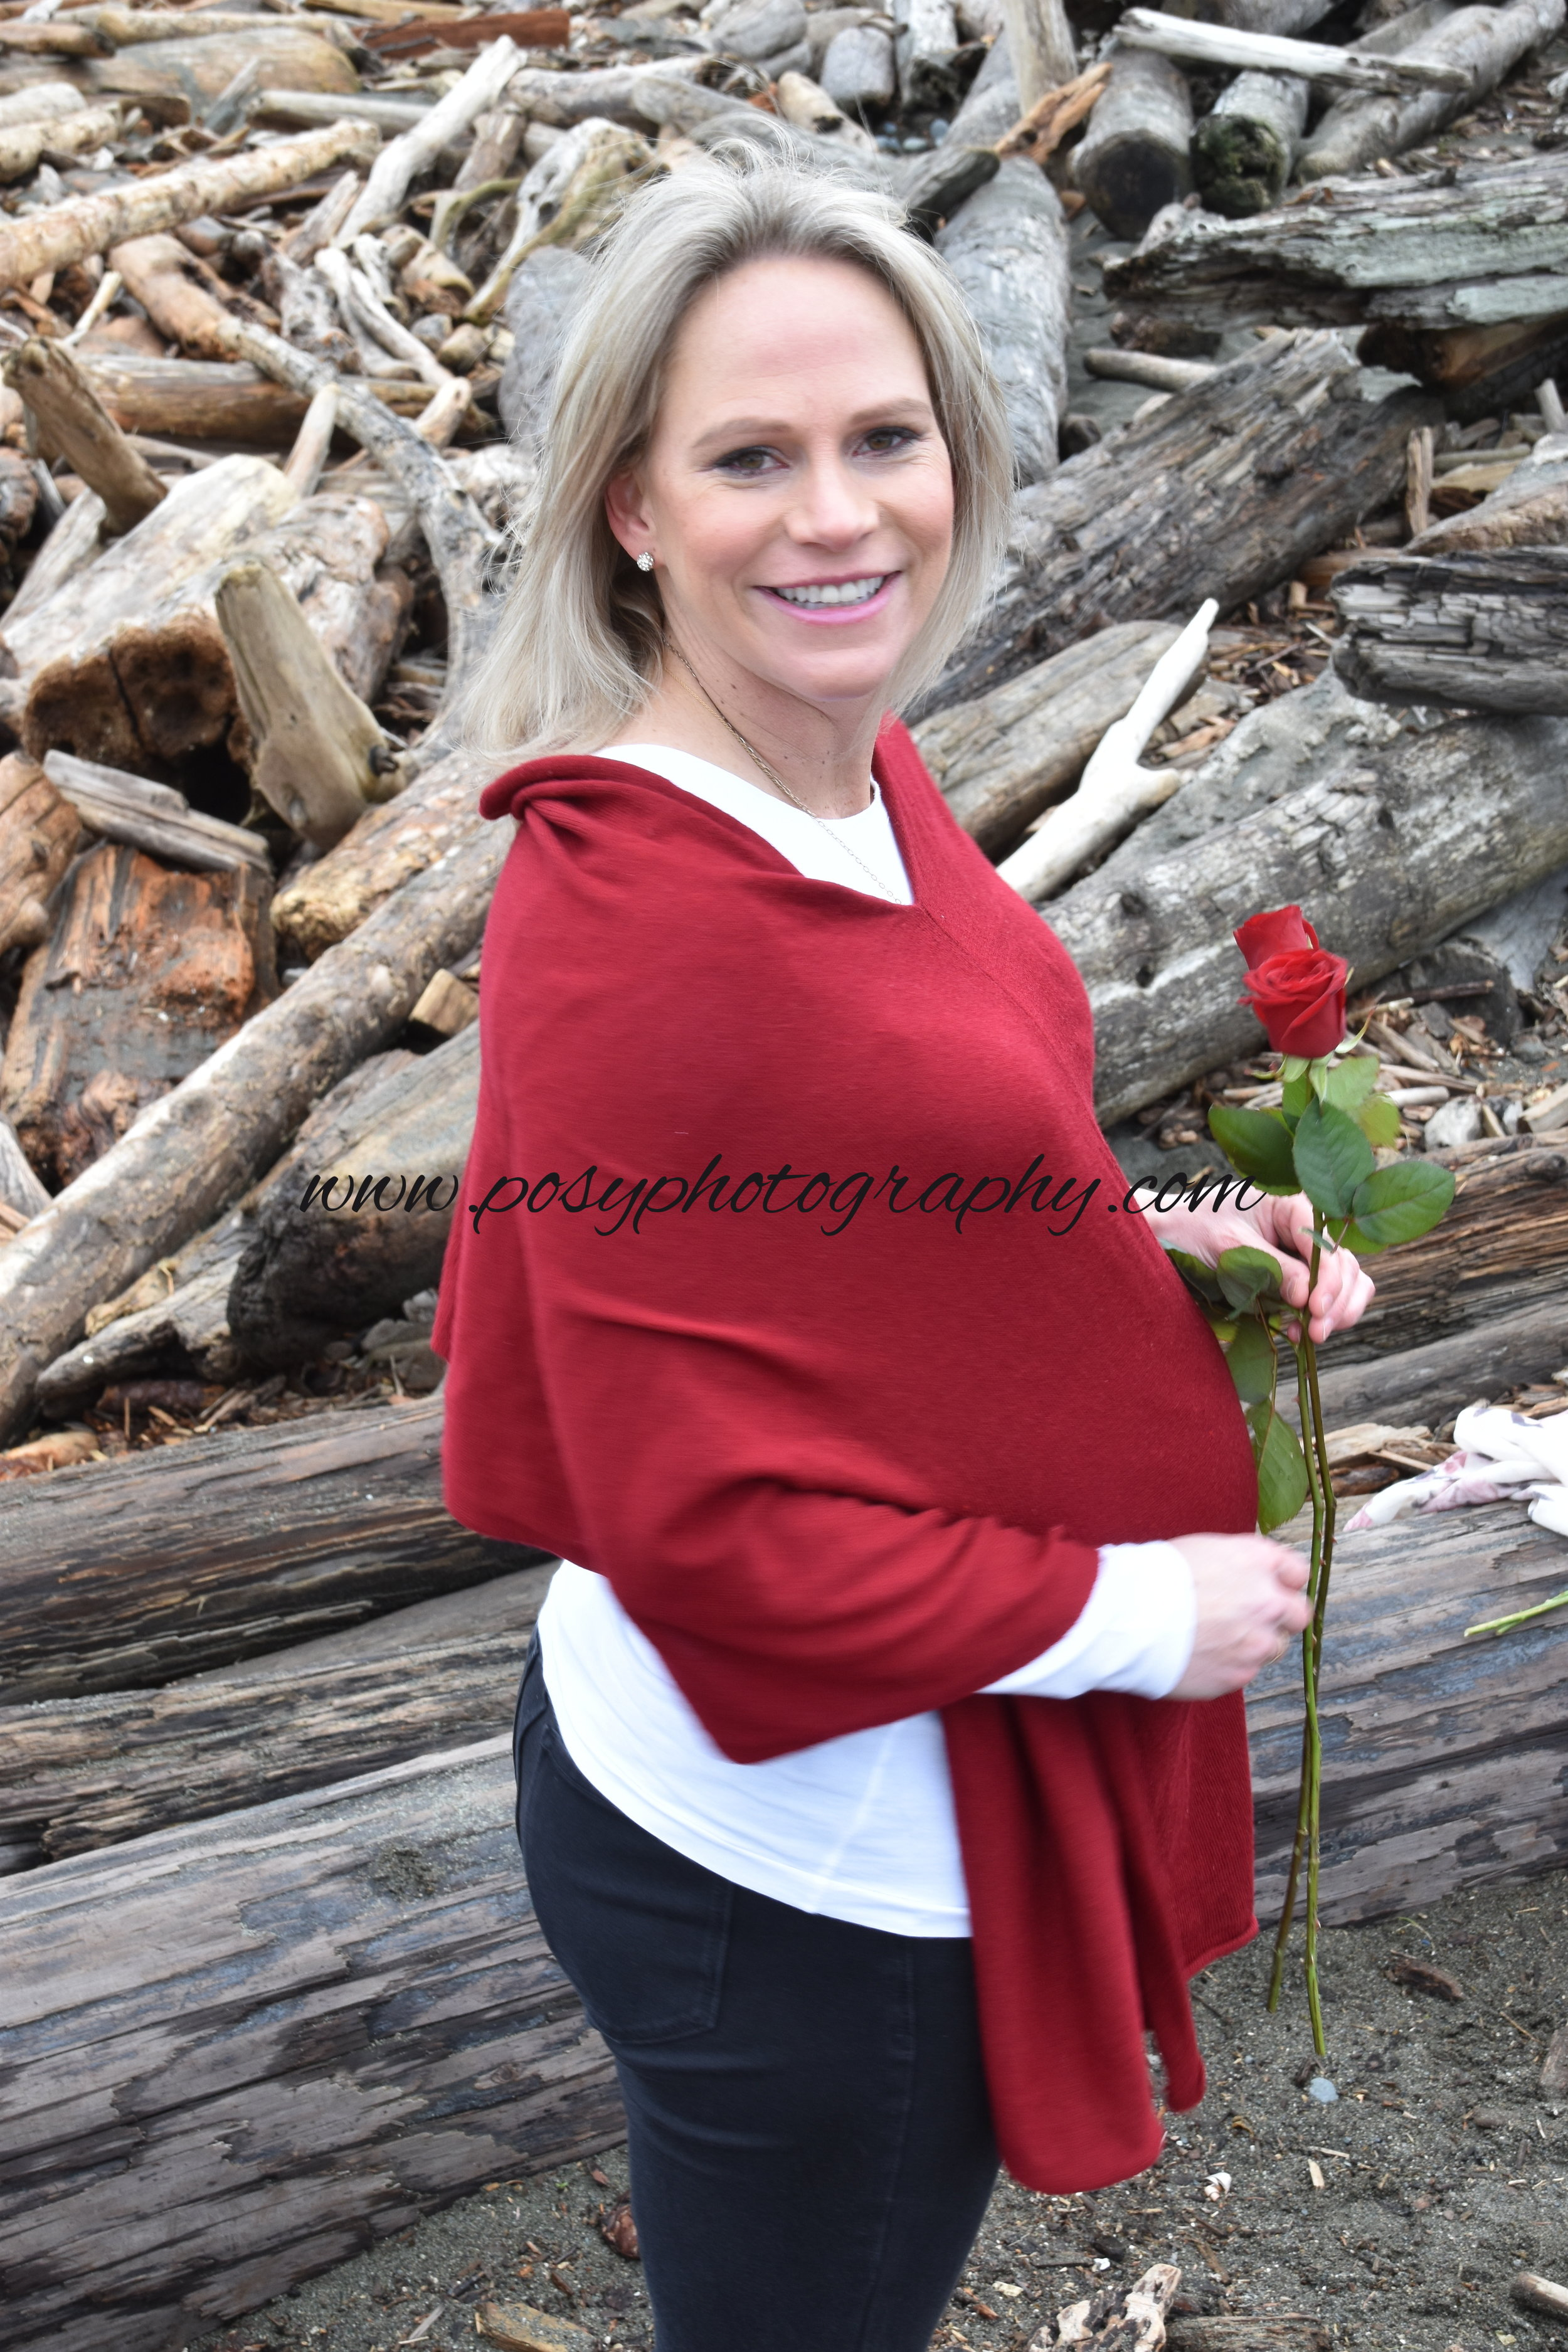 Valentines Maternity Portrait, Vancouver Island, BC